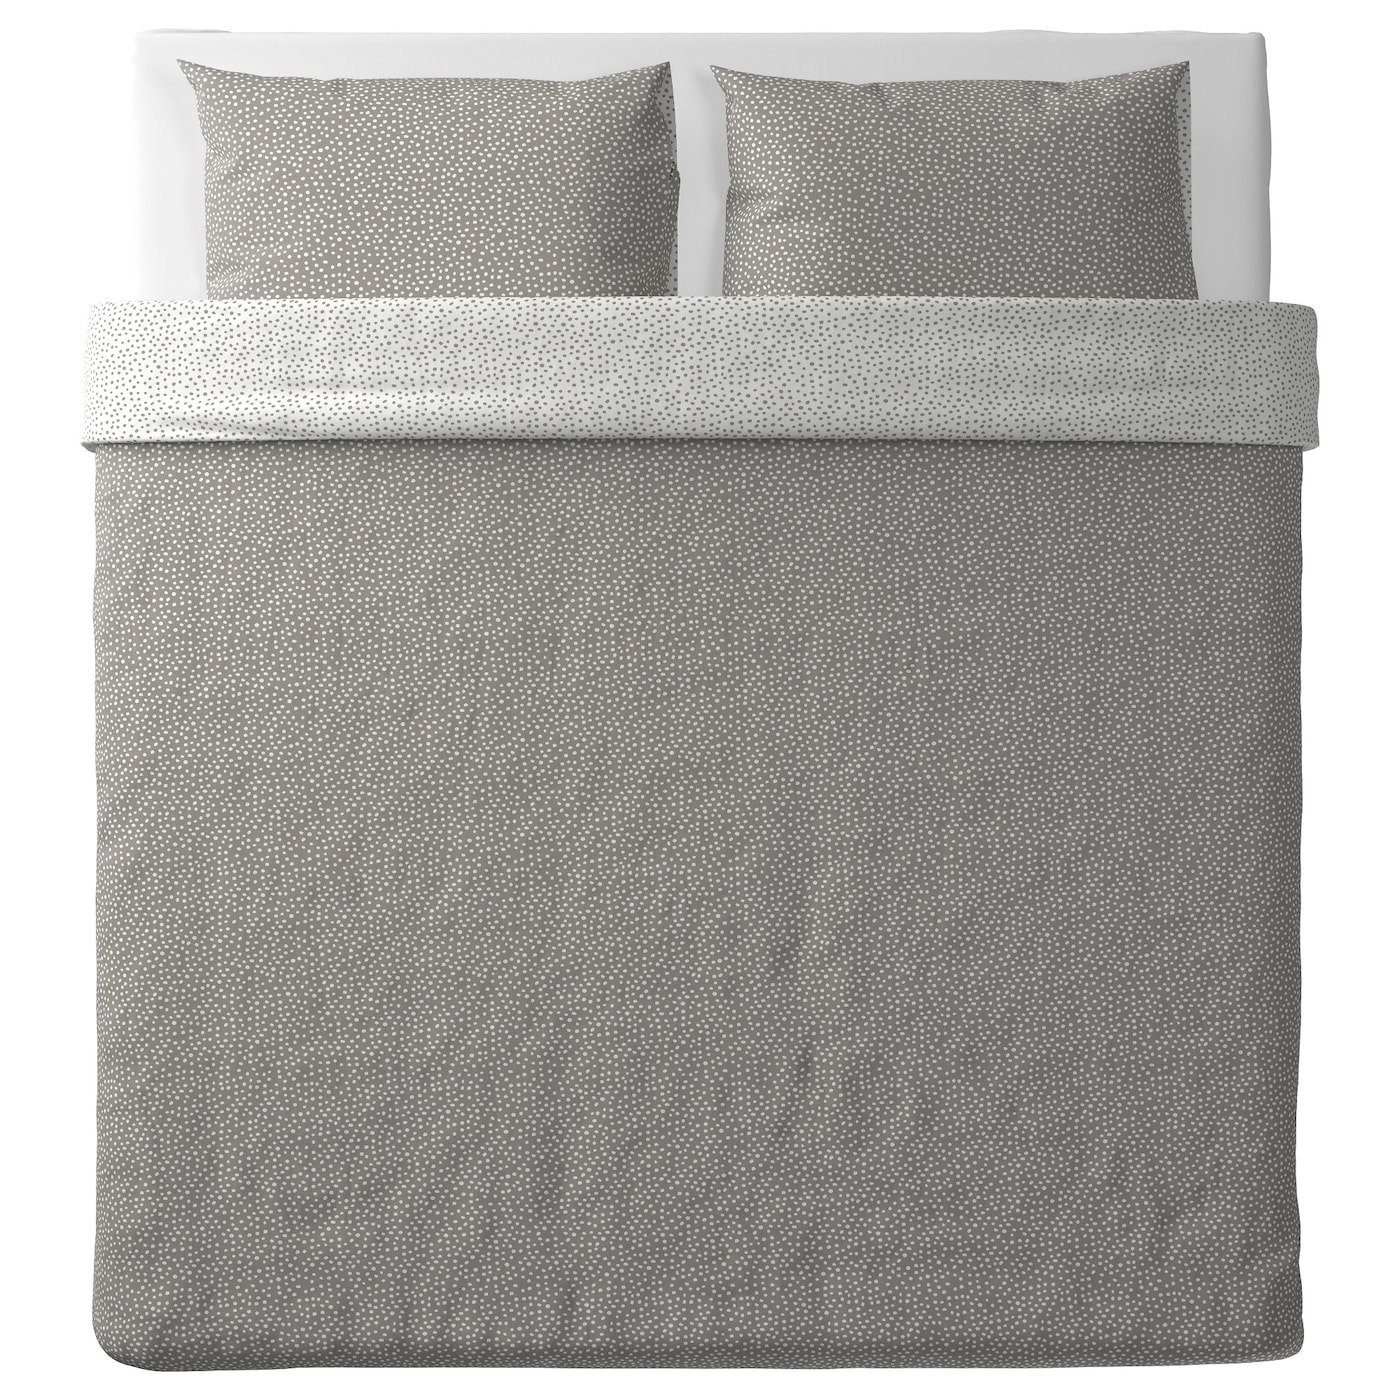 IKEA VINTER 2017 quilt cover and 2 pillowcases Concealed press studs keep the quilt in place.